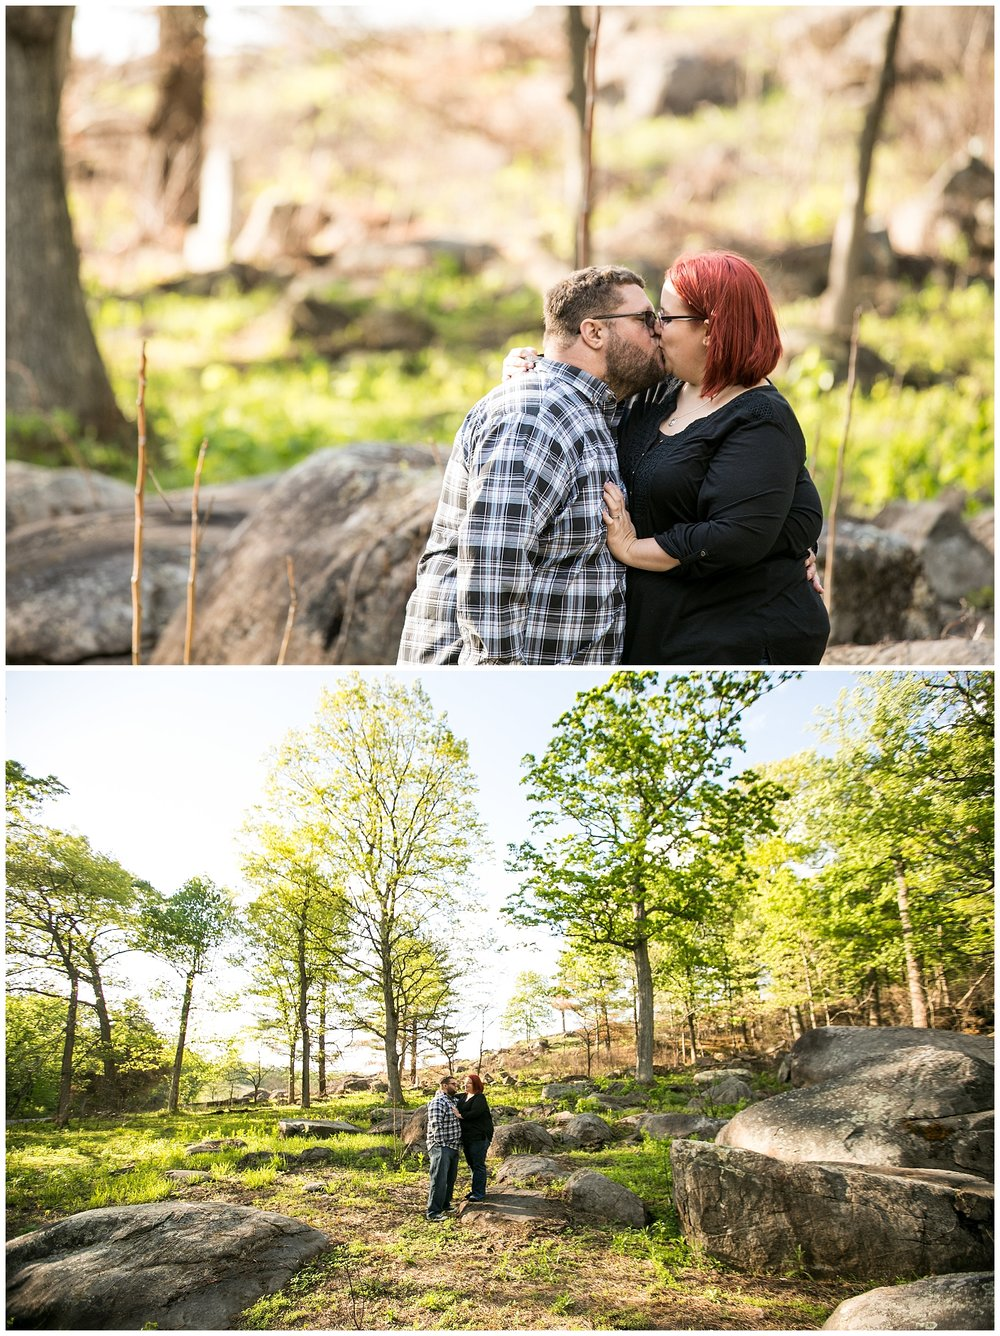 Katt Nick Gettysburg Engagement Session Living Radiant Photography photos_0035.jpg